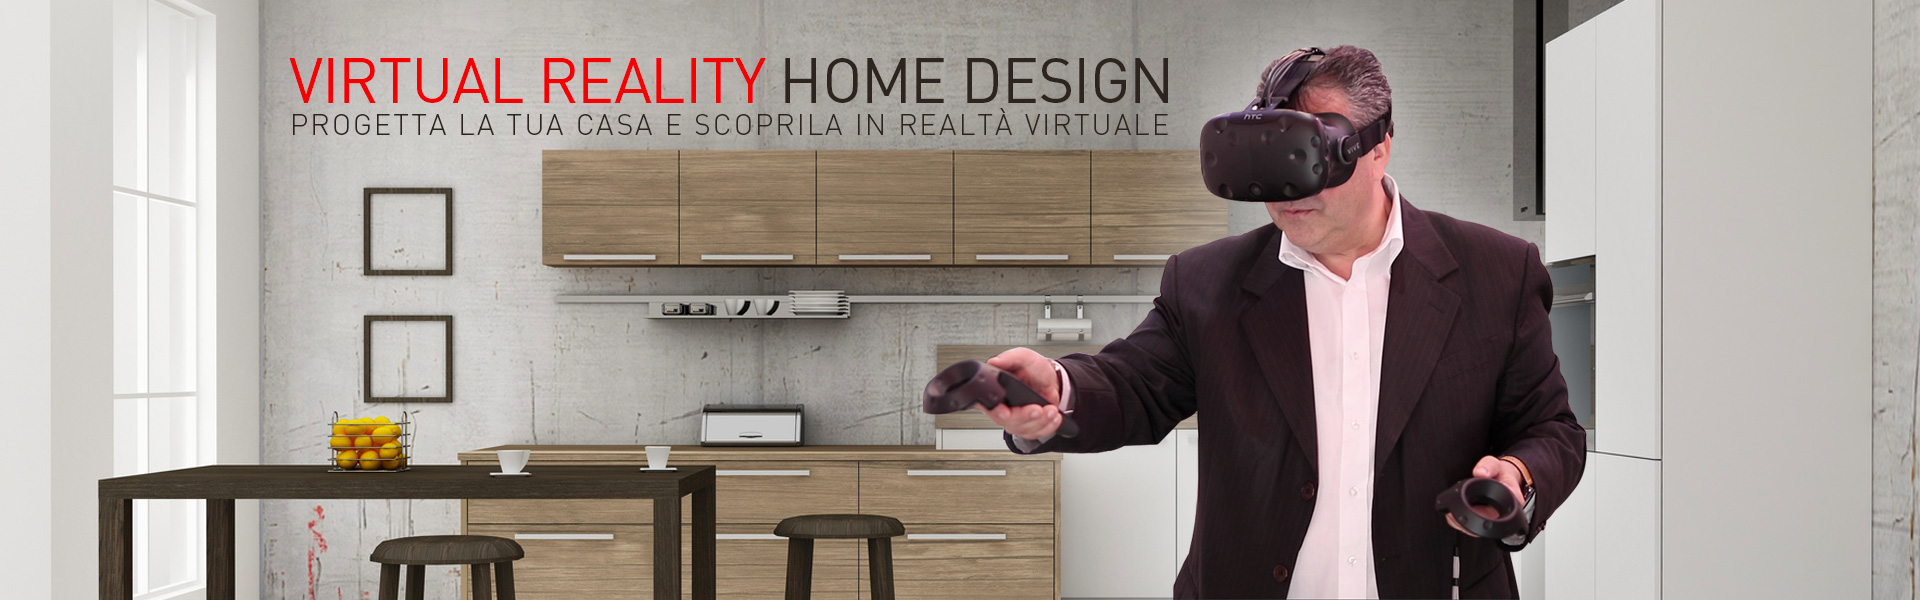 Virtual Reality Home Design